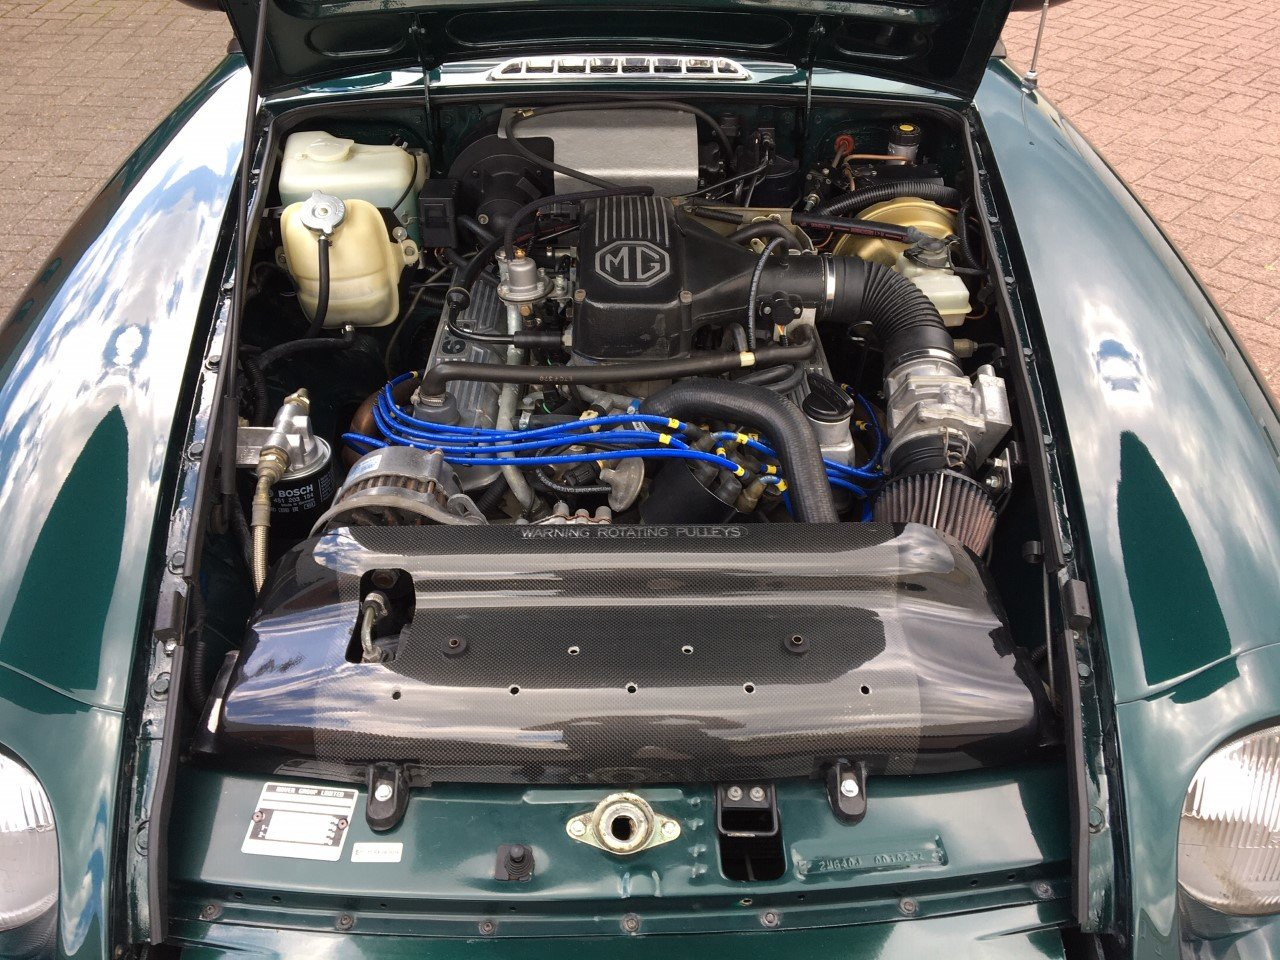 1993 MG RV8 LHD British Racing Green For Sale (picture 4 of 6)